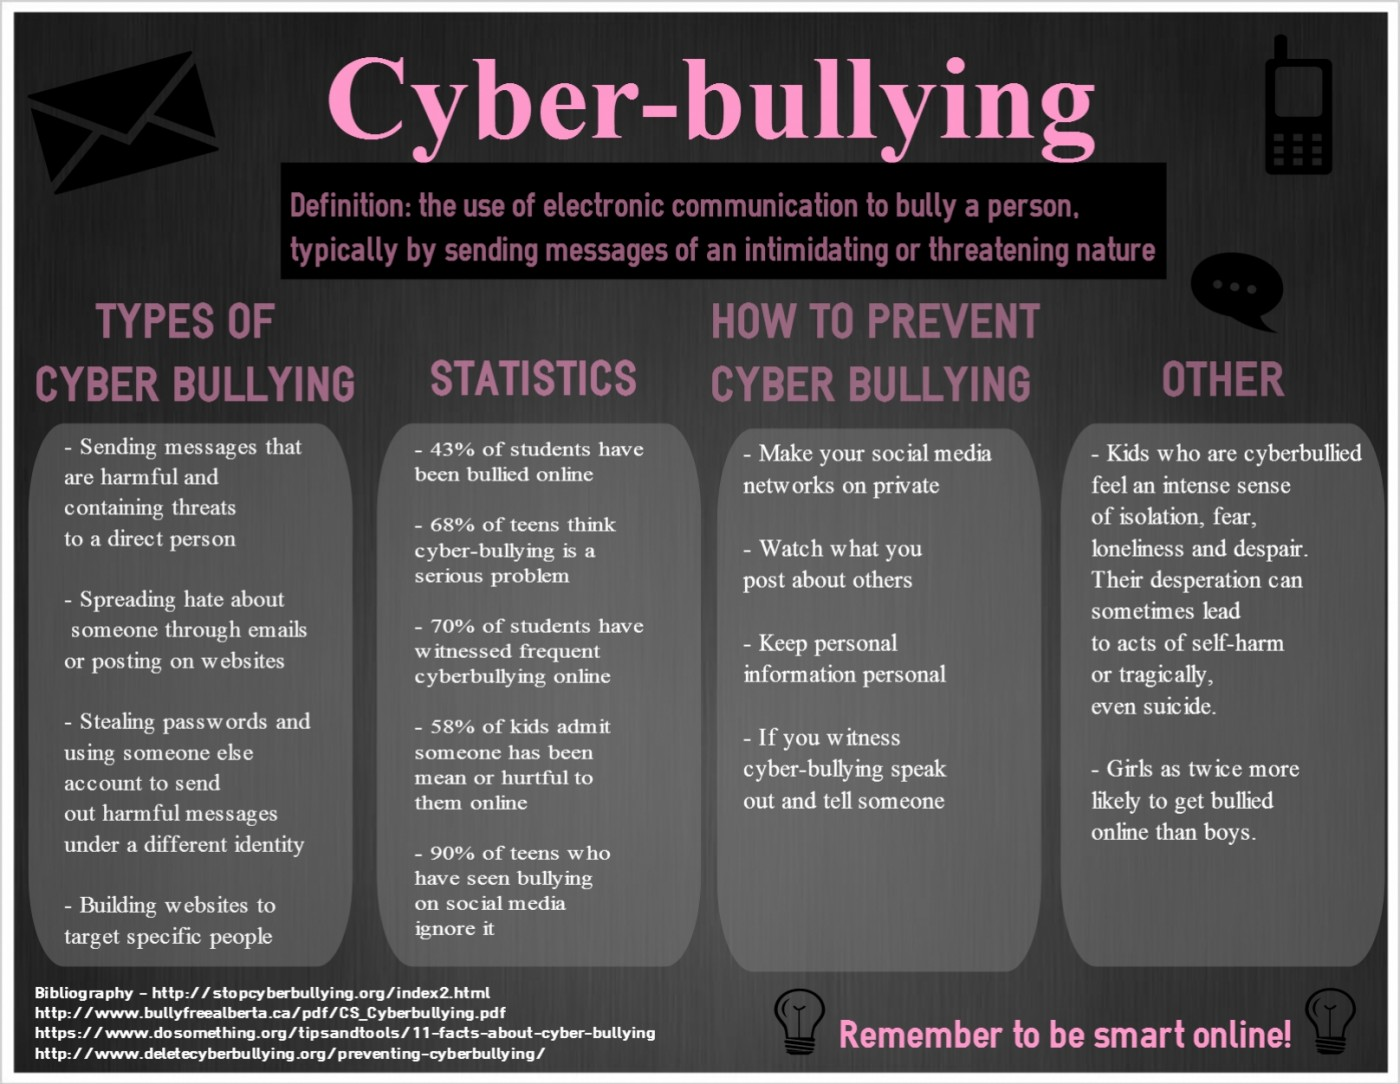 005 Essay Example Cyber Bullying Incredible Questions Argumentative Outline 1400